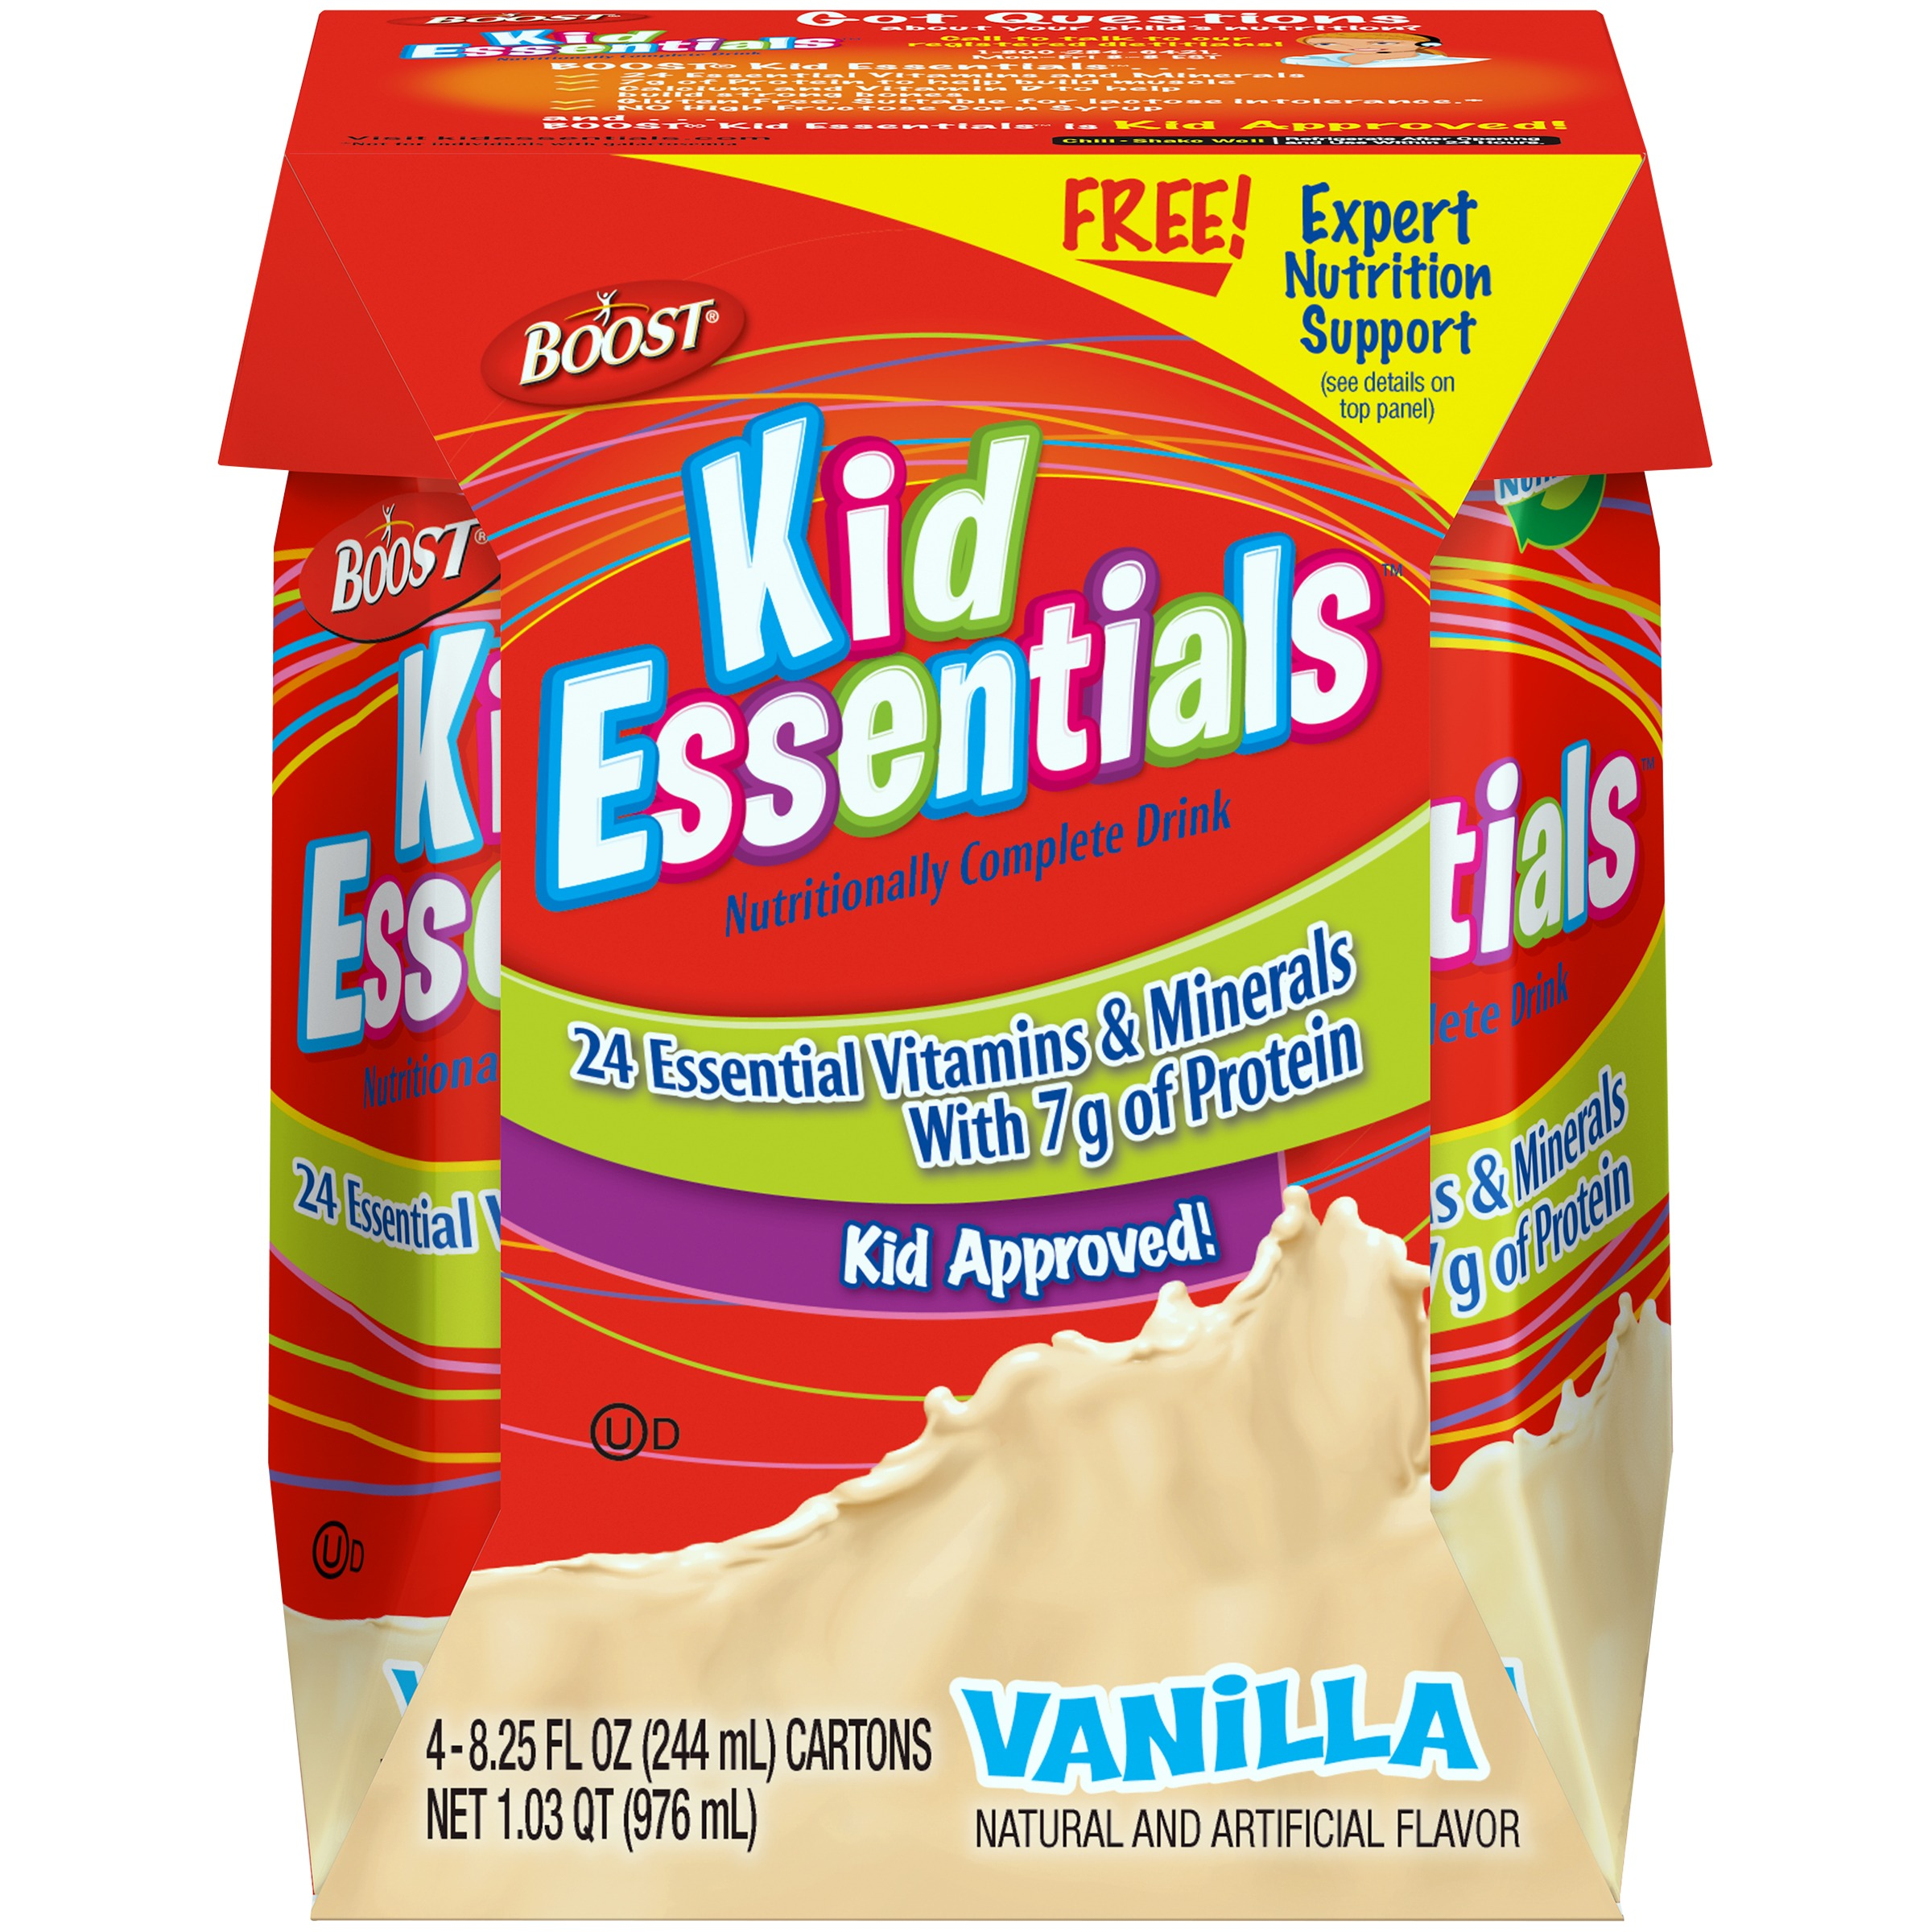 Boost Kids Essentials Vanilla Nutritionally Complete Drink, 8.25 Fl oz, 4 Ct